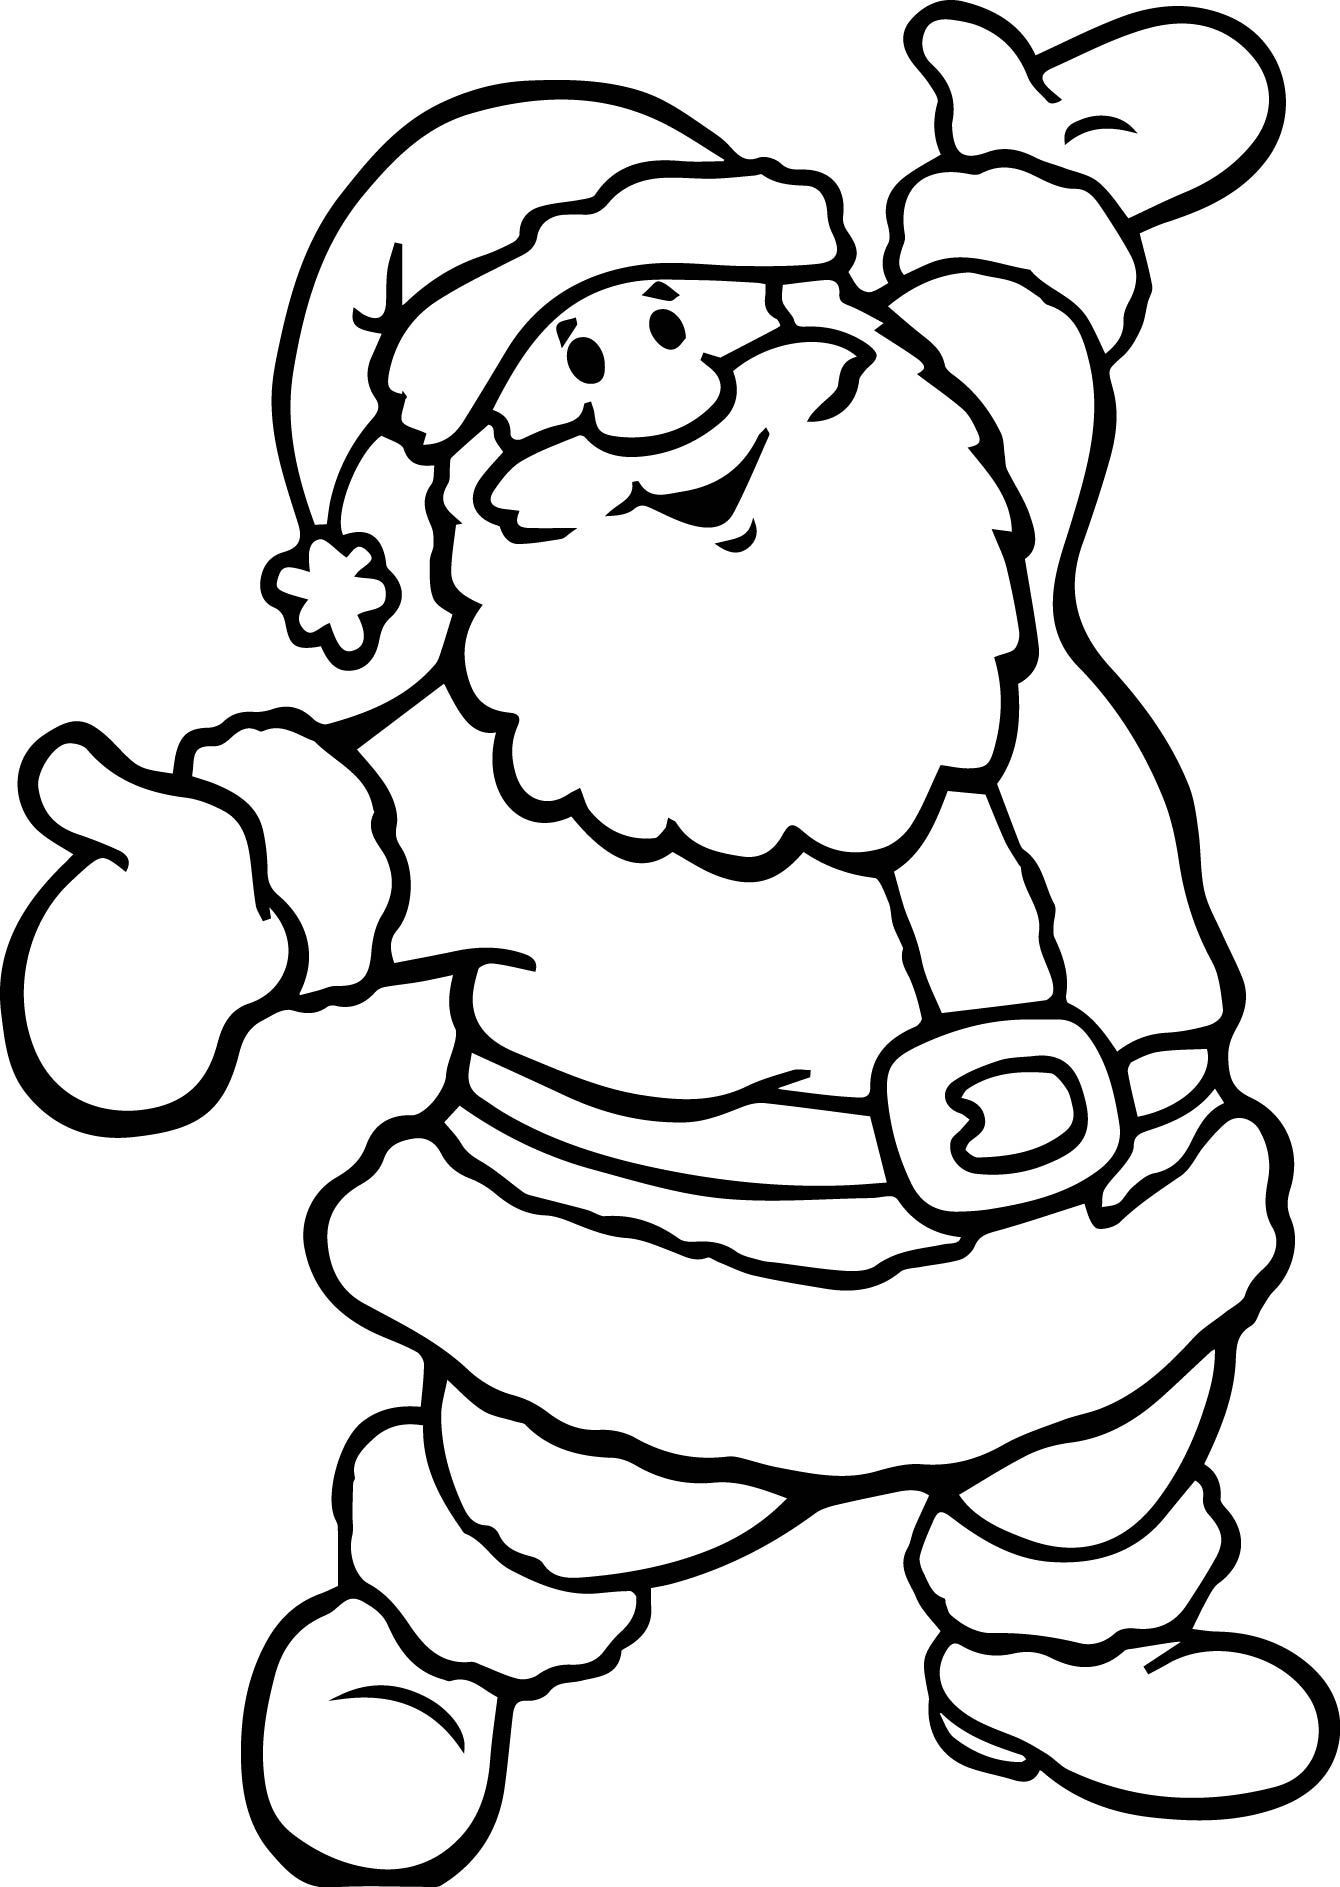 Cool Santa Claus Printable Coloring Pages Have Fun